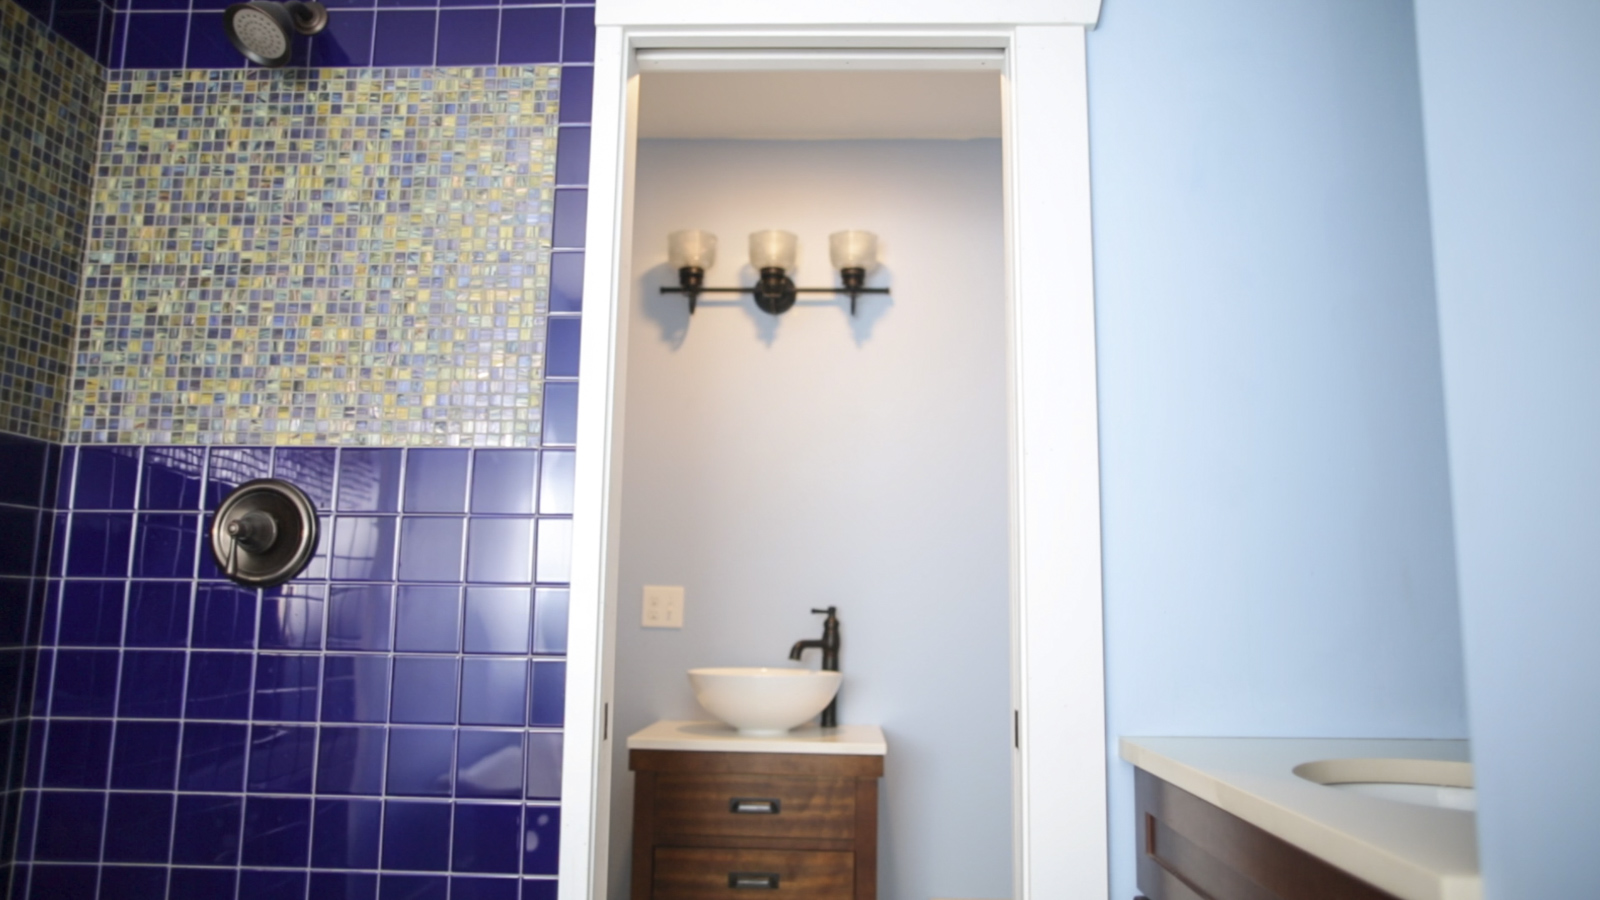 Bathroom remodel cost per square foot why it 39 s more to for Labor cost to remodel bathroom